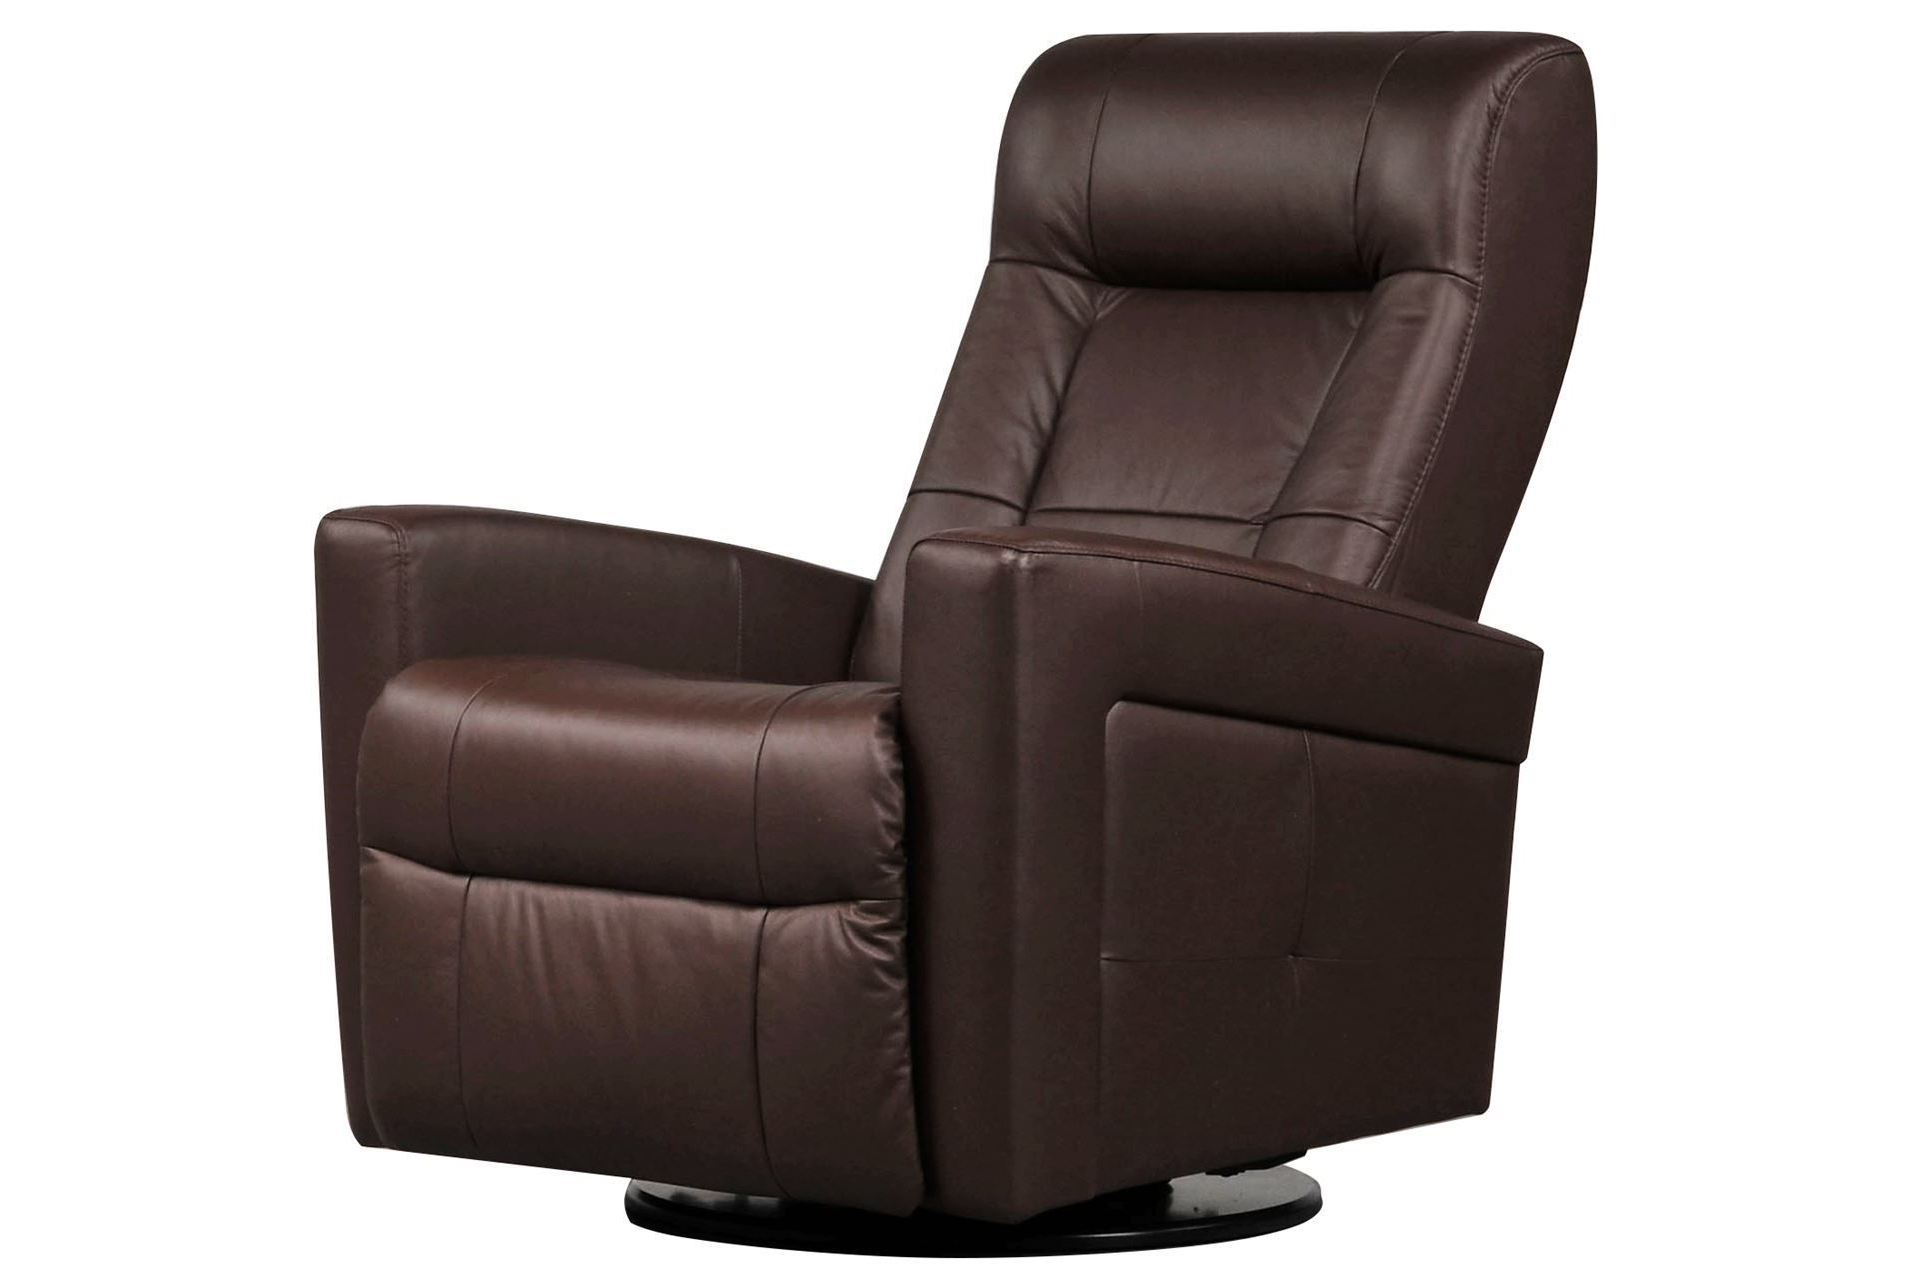 Furniture Throughout Swivel Tobacco Leather Chairs (View 4 of 20)